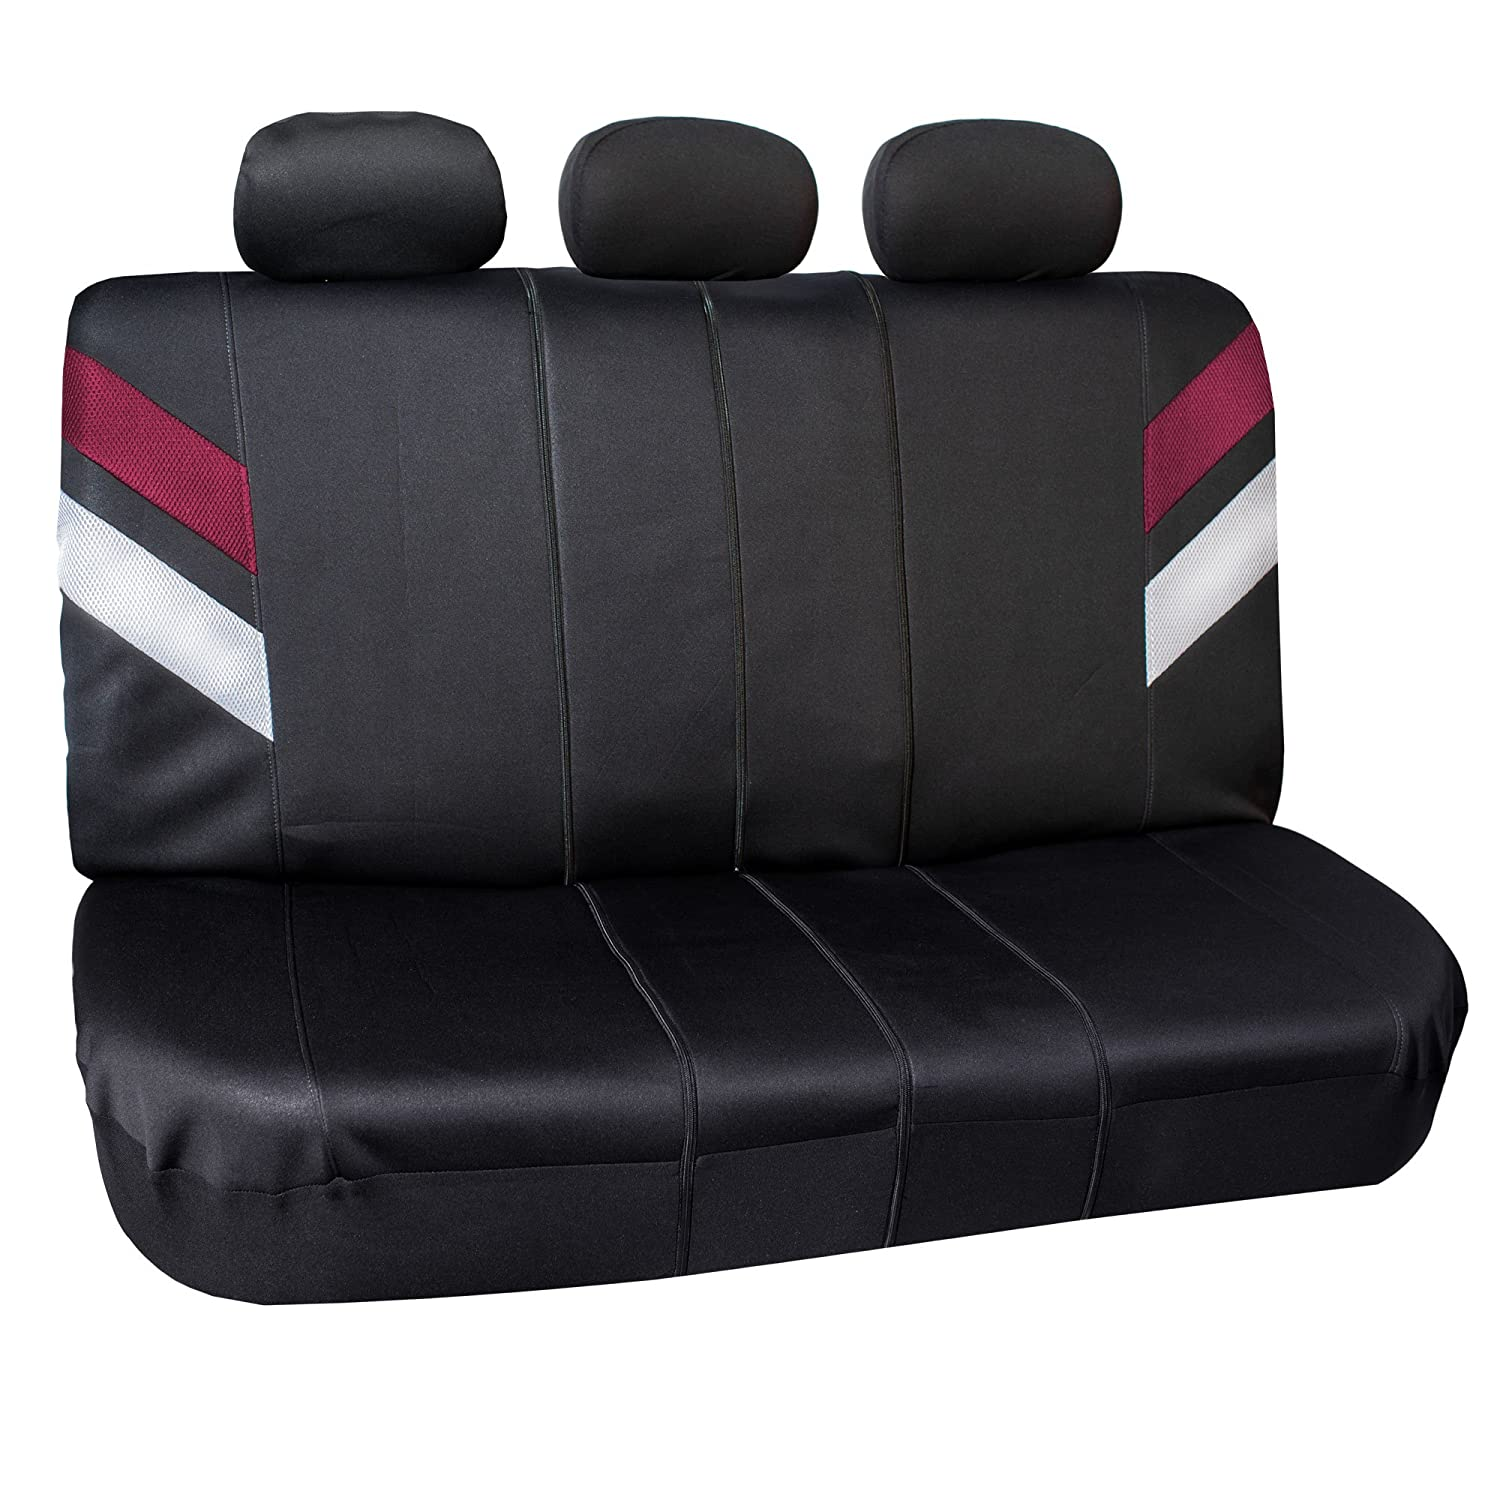 Two Tone Purple Leopard /& Black Color- Fit Most Car FH Group FB126115 Purple Leopard Full Set Car Seat Covers Truck SUV or Van Airbag Compatible